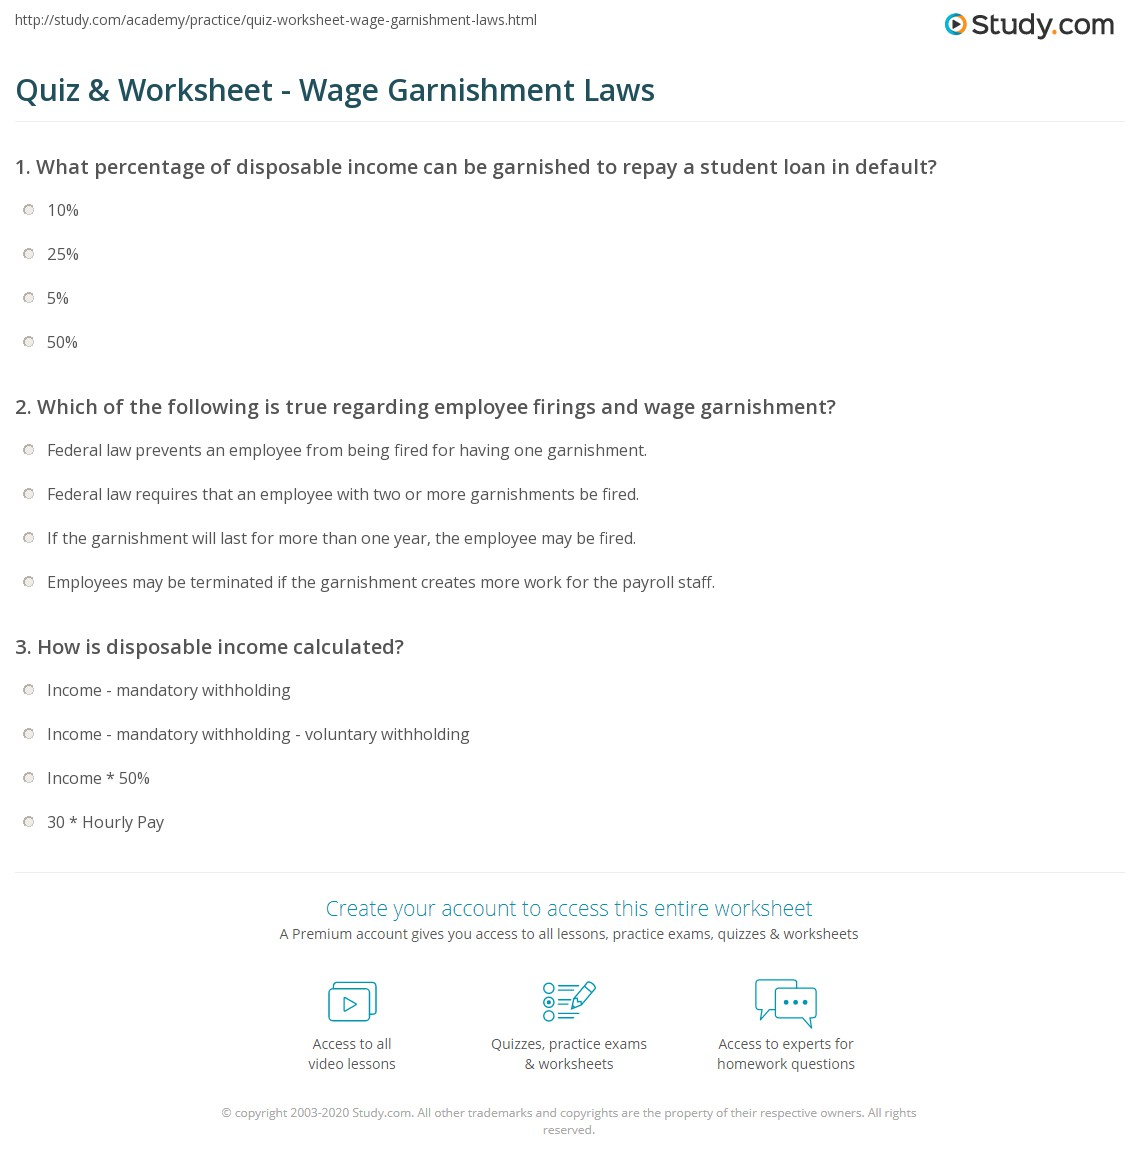 Worksheets Wage Garnishment Worksheet quiz worksheet wage garnishment laws study com print restrictions around worksheet